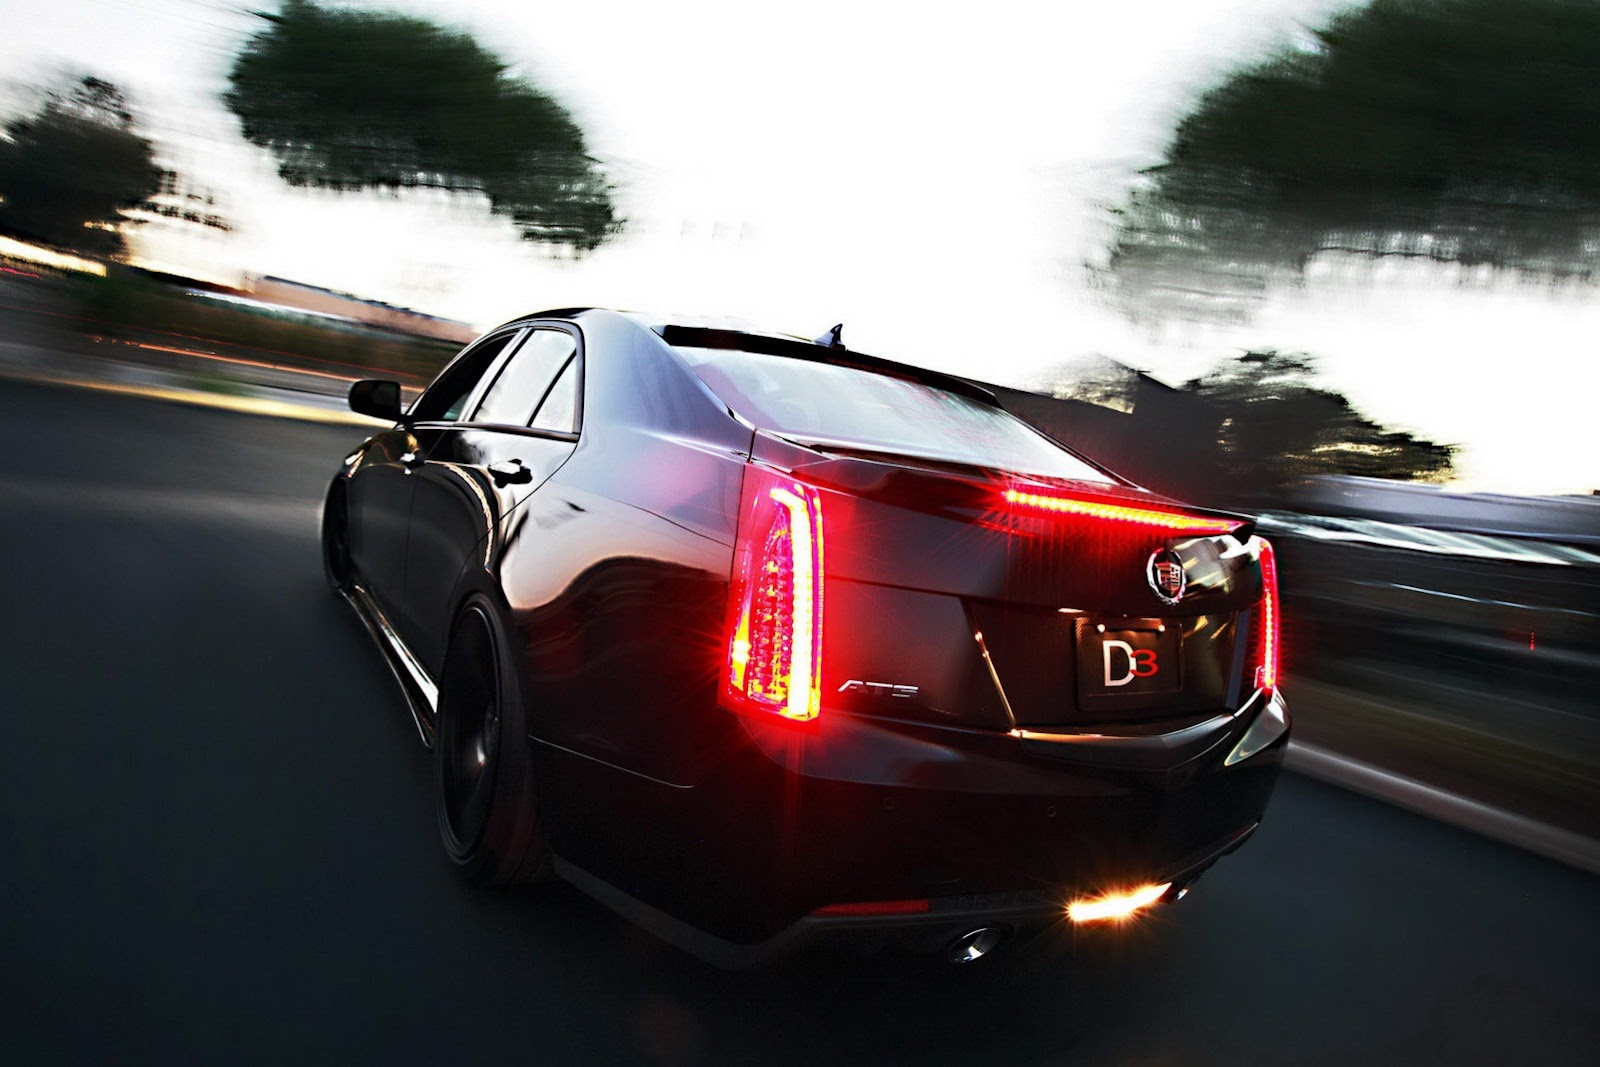 Modified Cadillac Ats By D3 Group